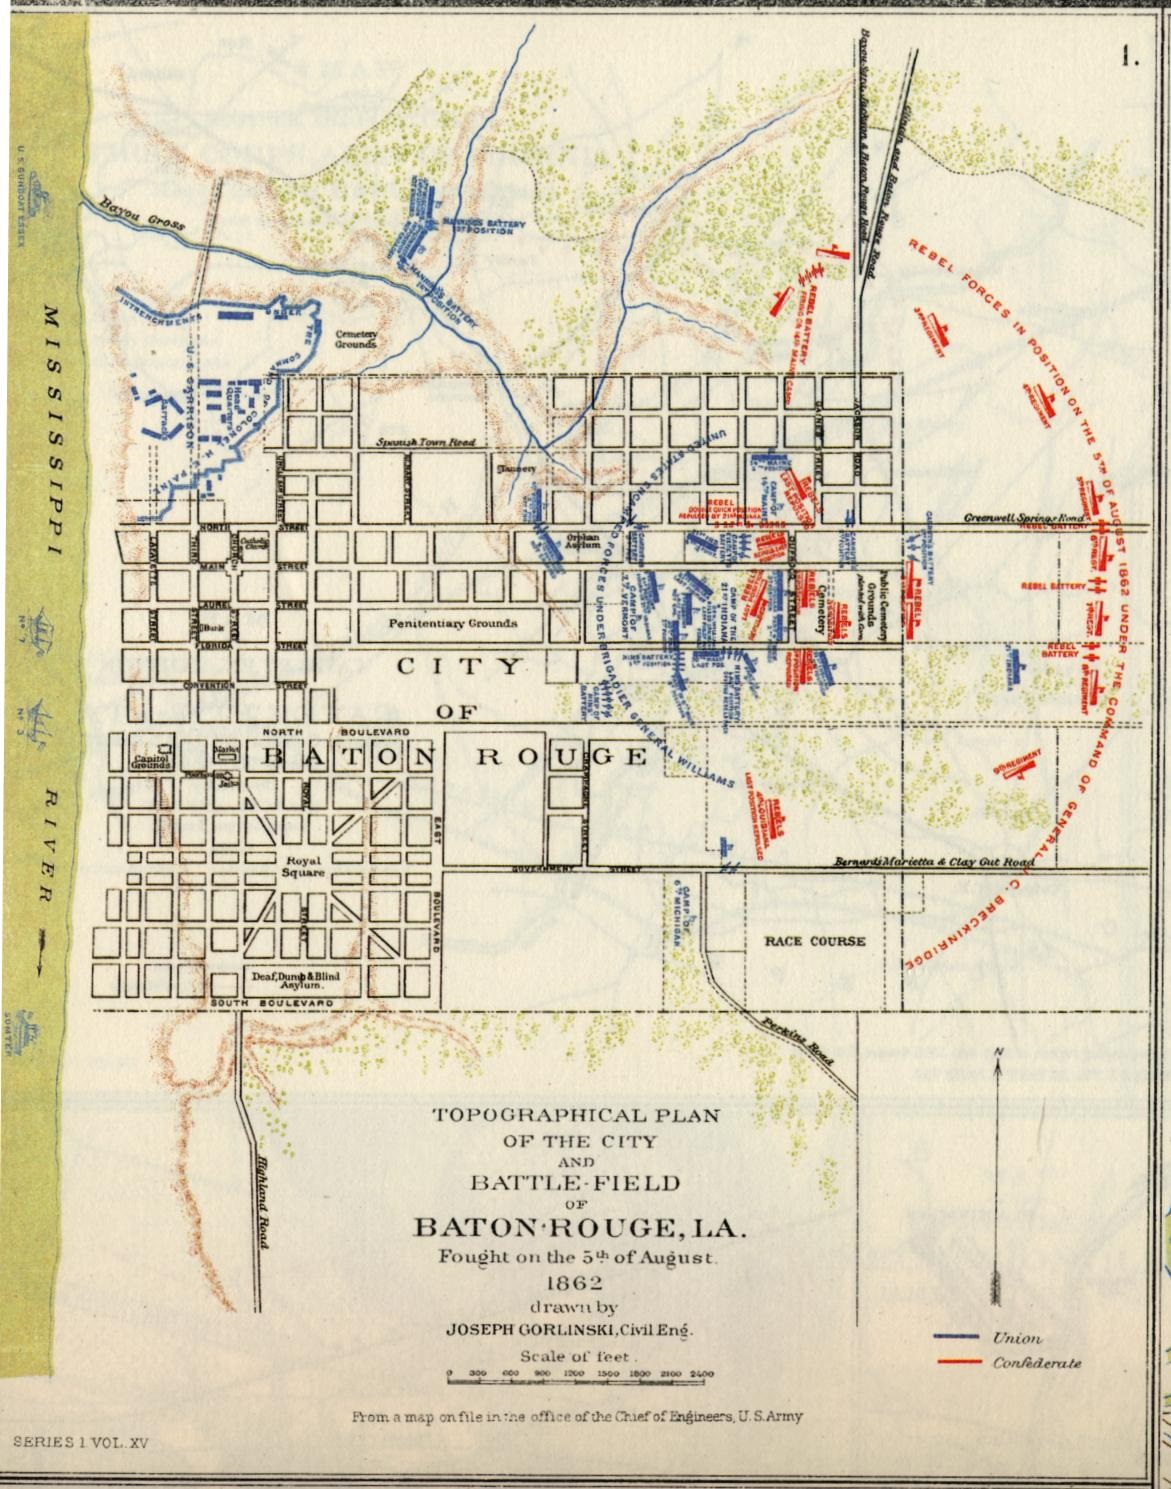 click to see battle map